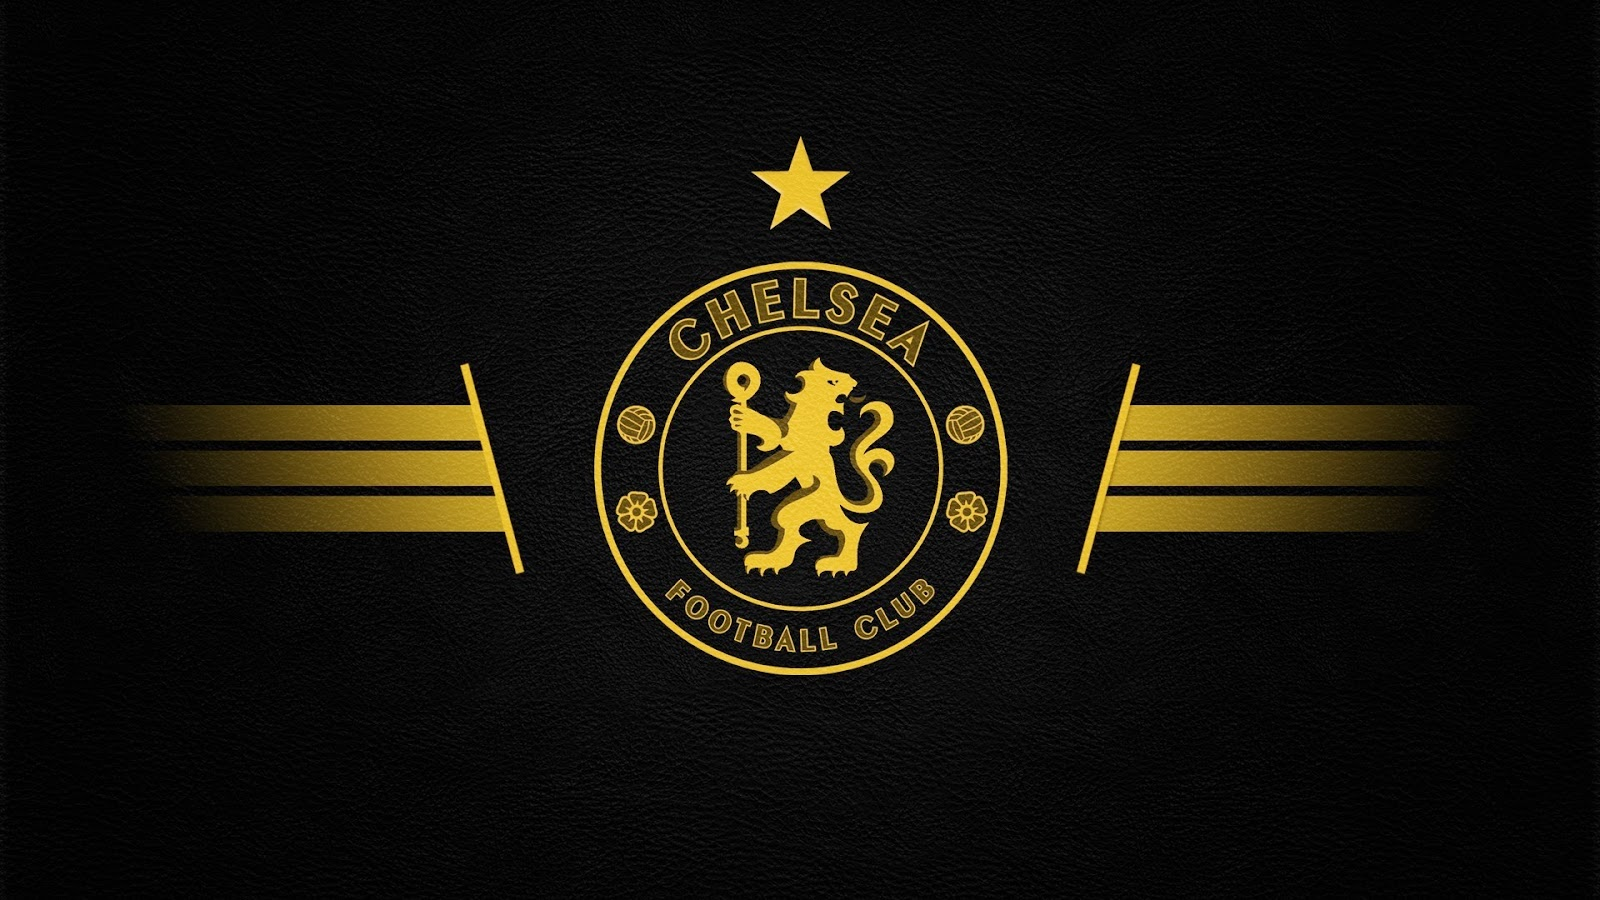 chelsea fc wallpapers for pc - photo #19